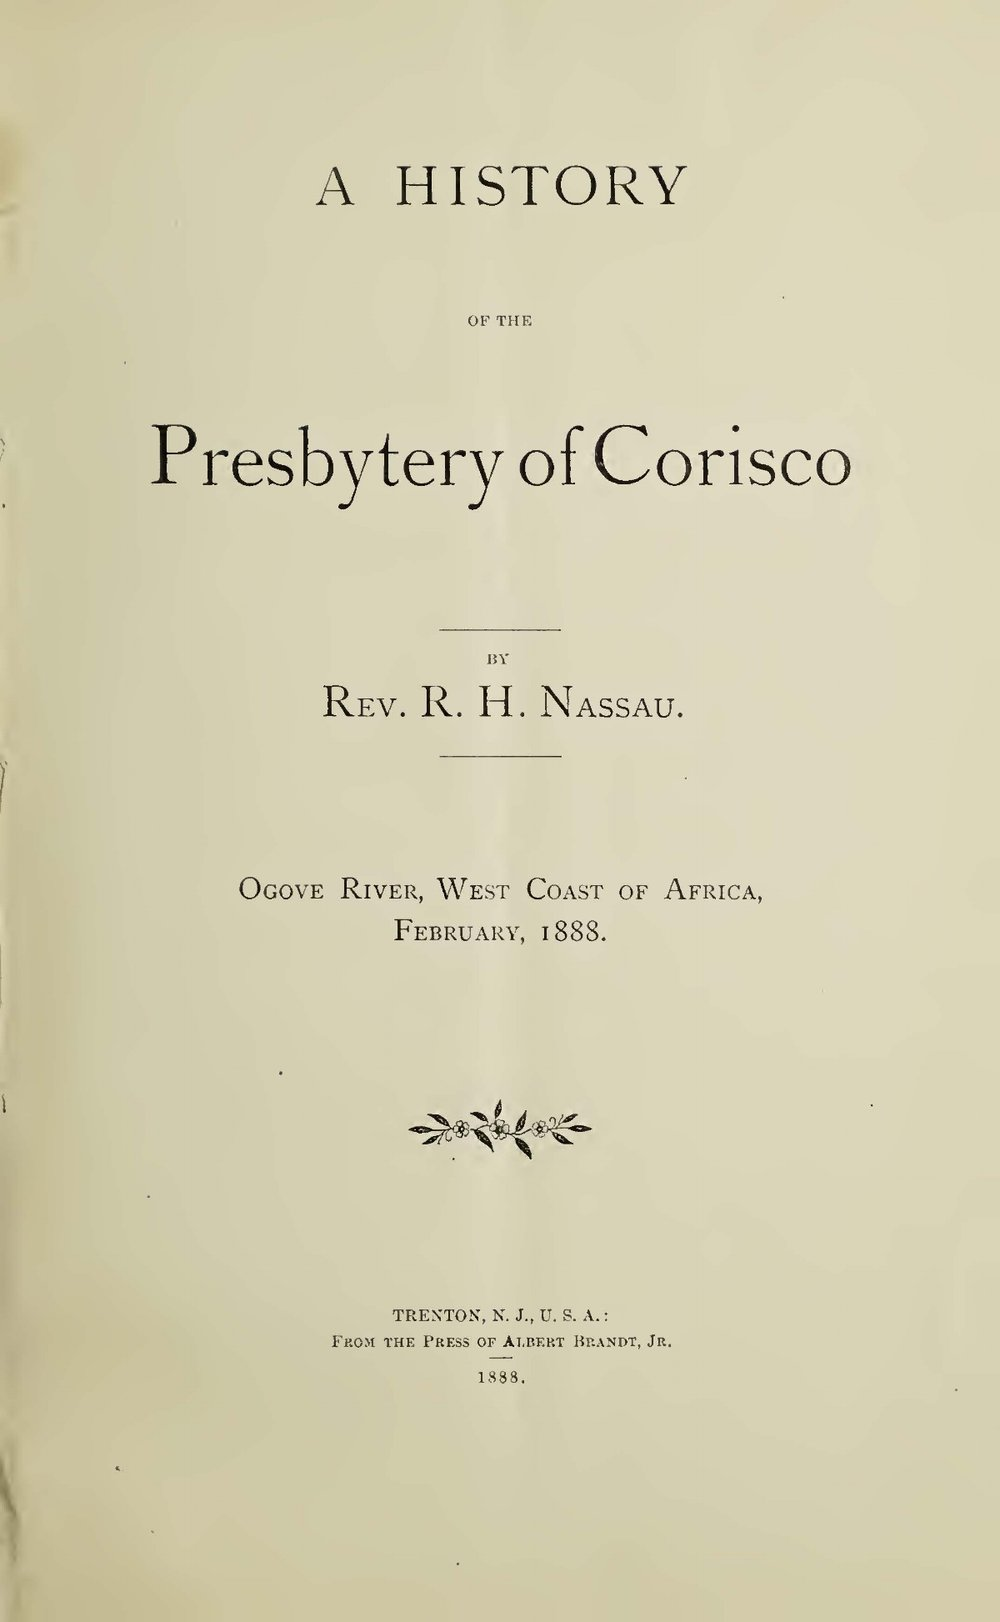 Nassau, Robert Hamill, A History of the Presbytery of Corisco Title Page.jpg